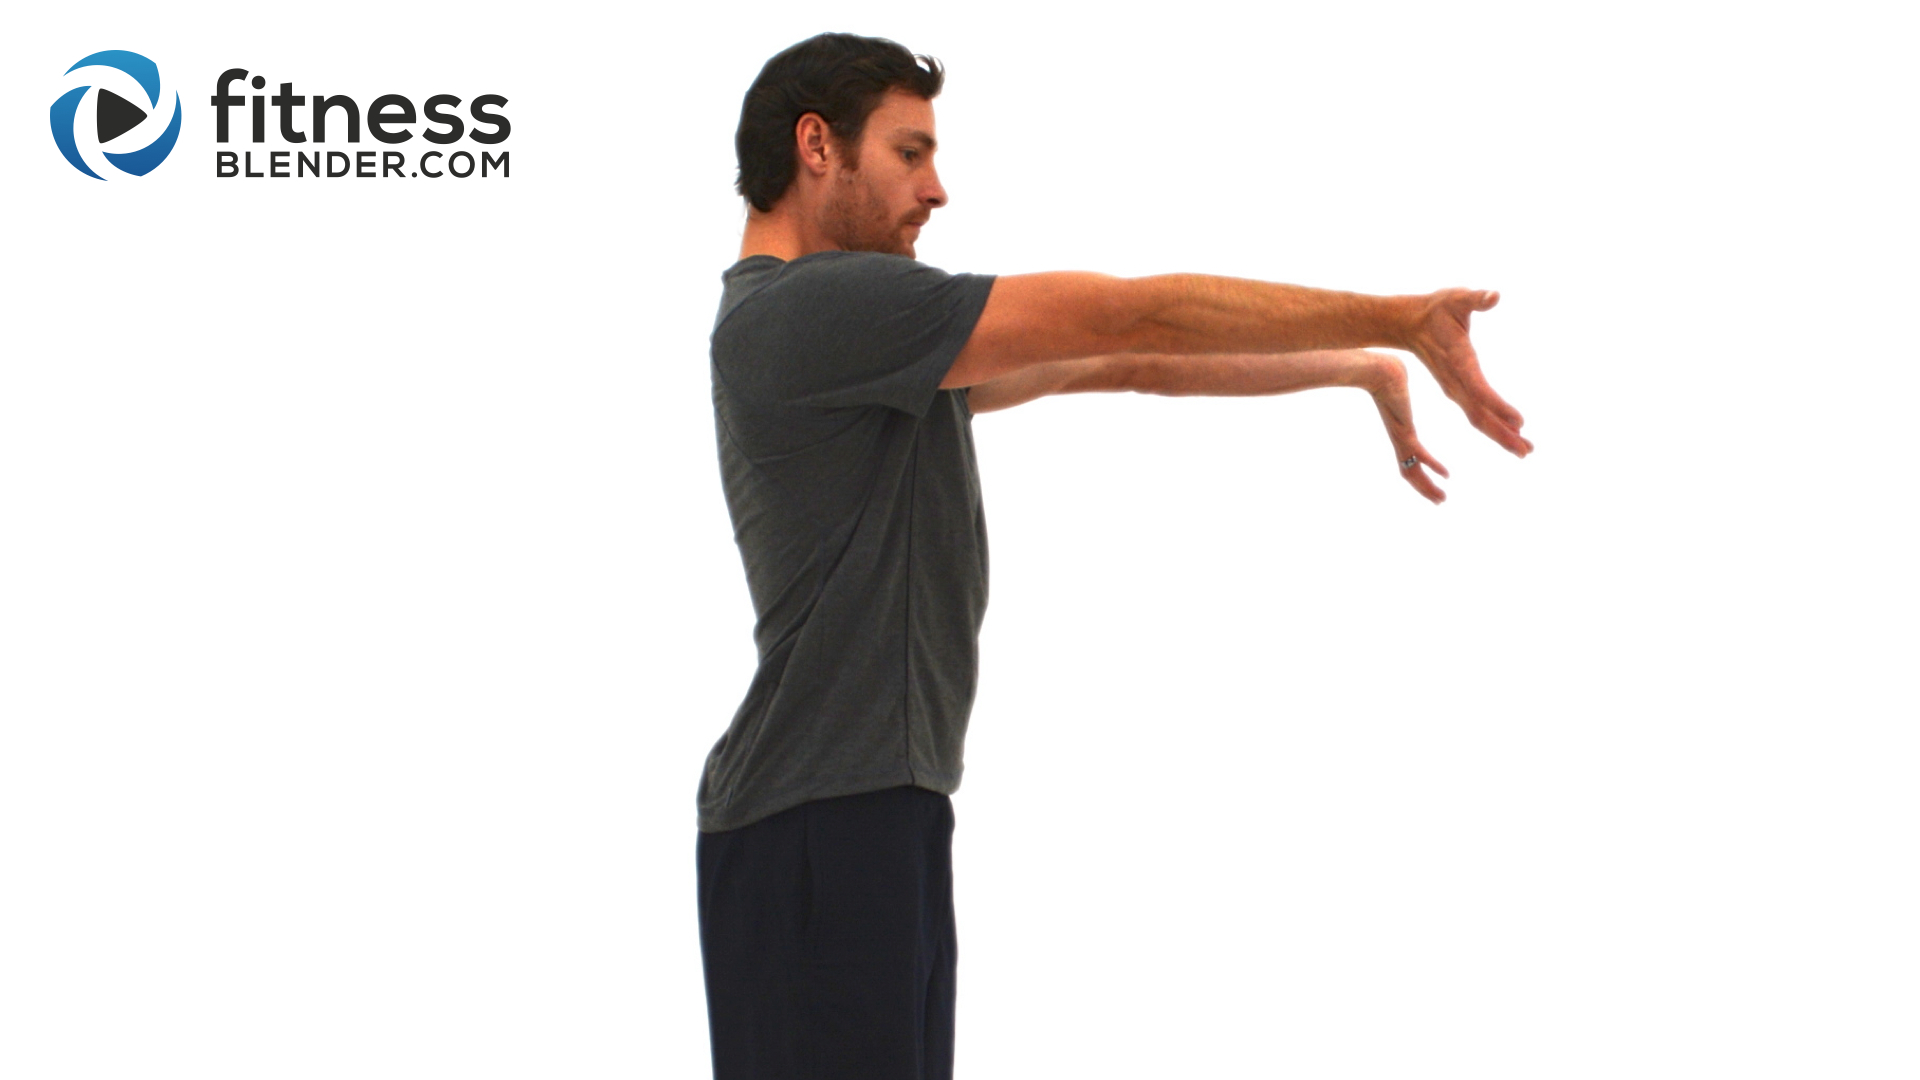 Upper Body Active Stretch Workout - Arms, Shoulder, Chest ...